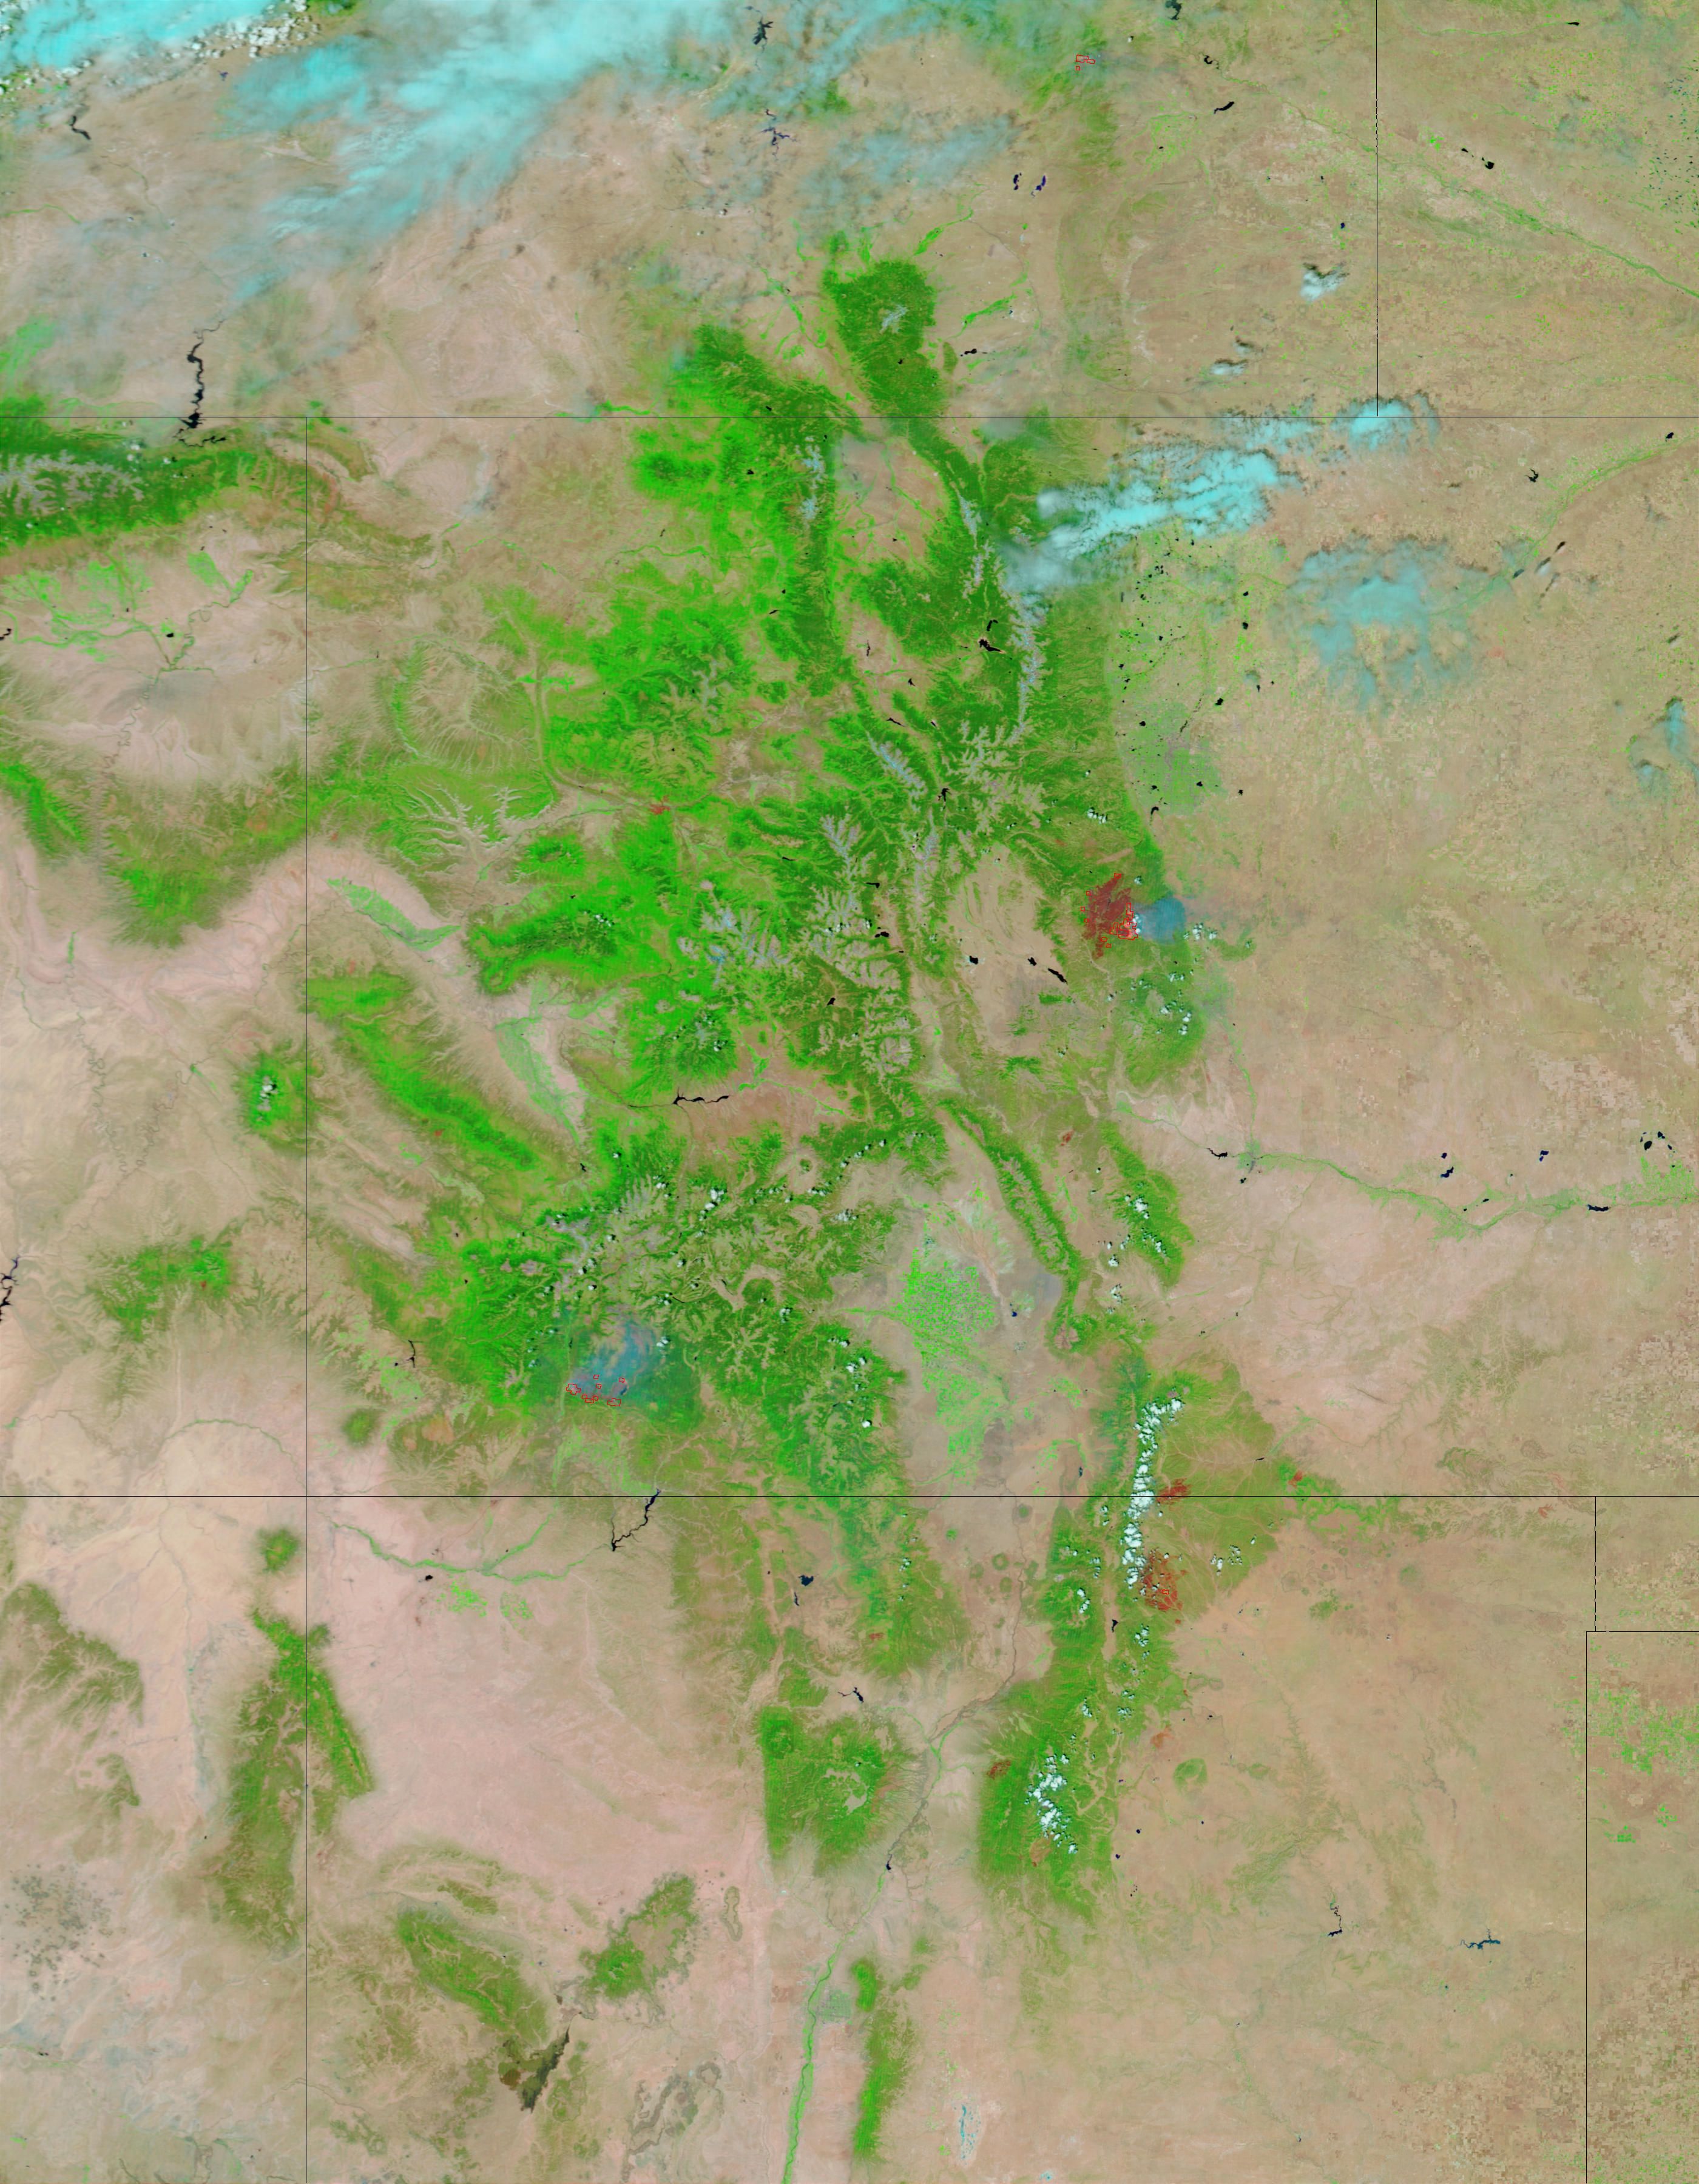 Wildfires and burn scars in Colorado and New Mexico